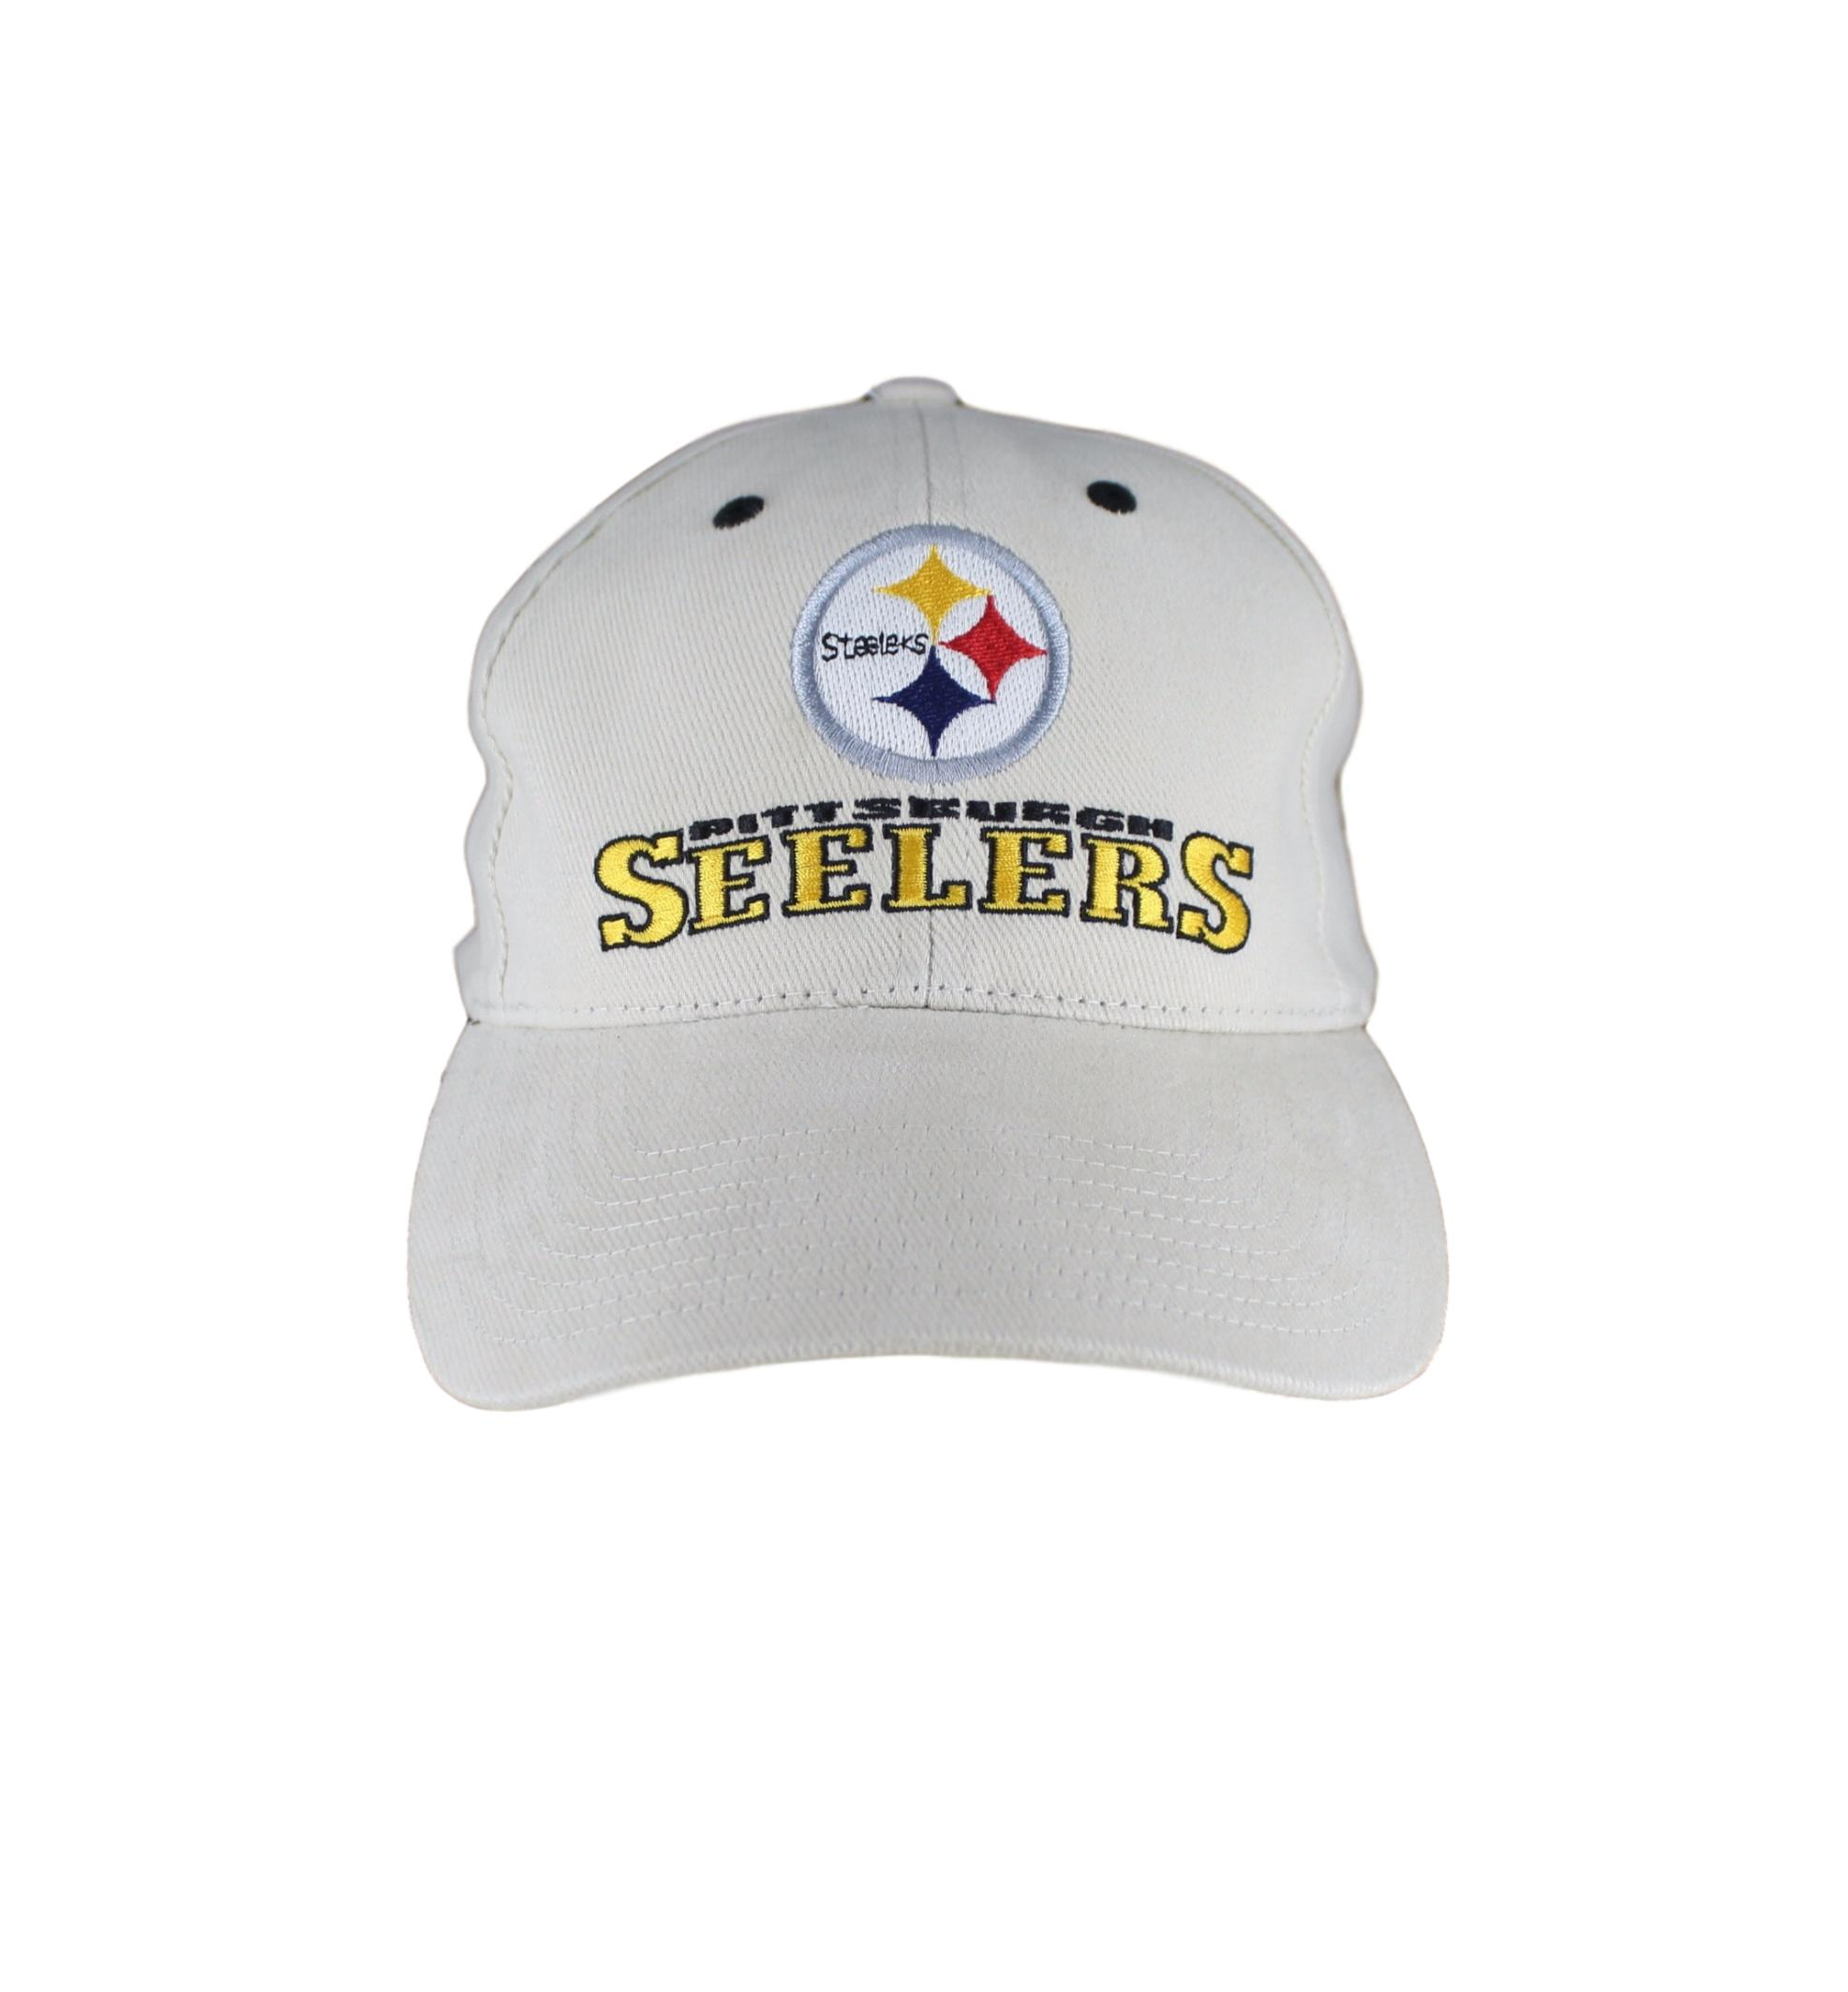 Pittsburgh Steelers Yellow Text And Logo On Beige